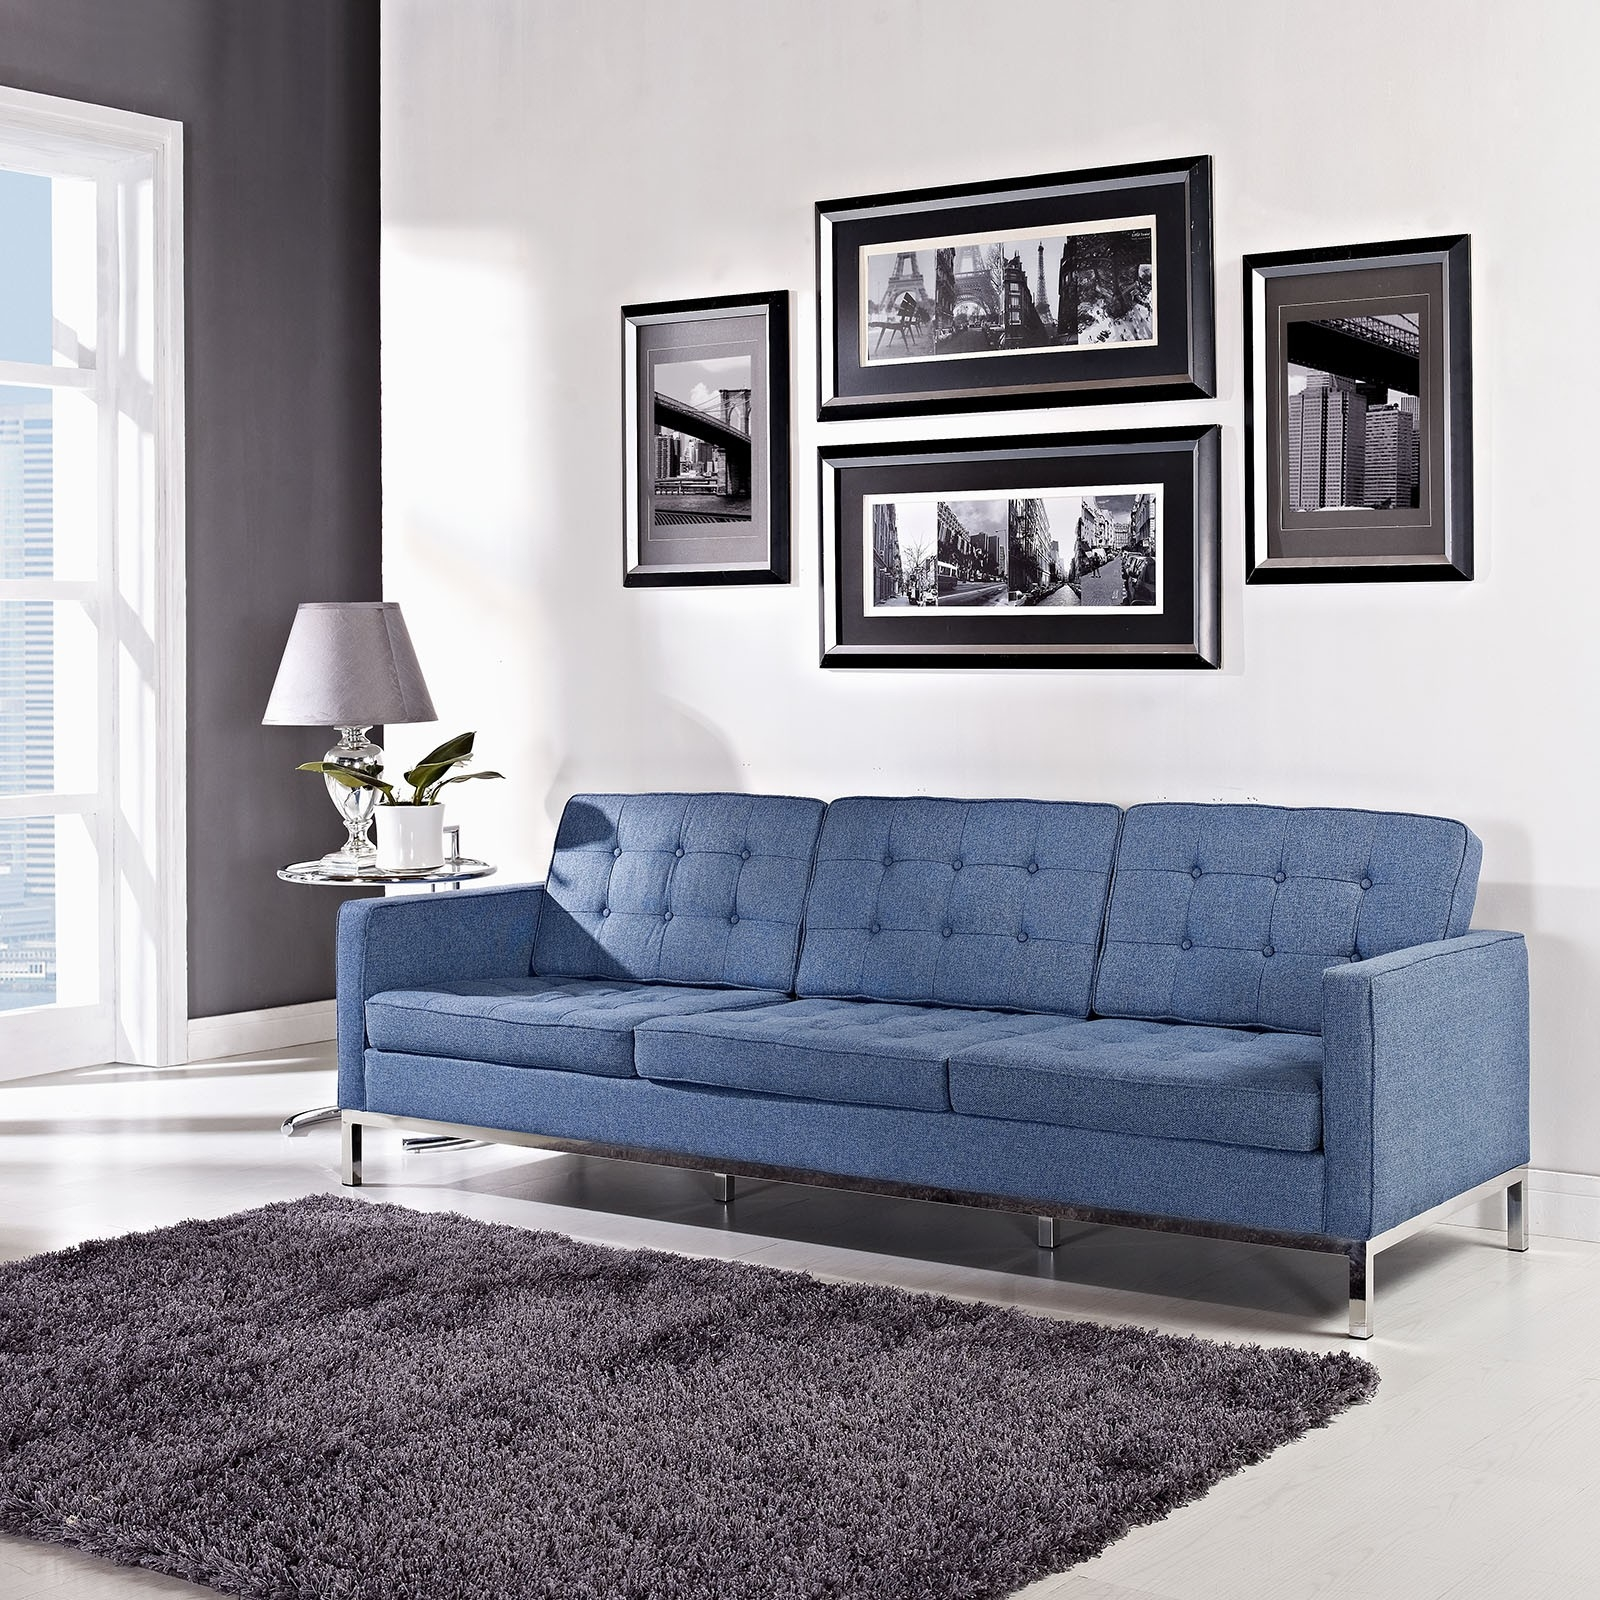 Sofas Center Florence Knoll Sofa Comfort Chaise Reproduction Pertaining To Florence Large Sofas (Image 12 of 15)